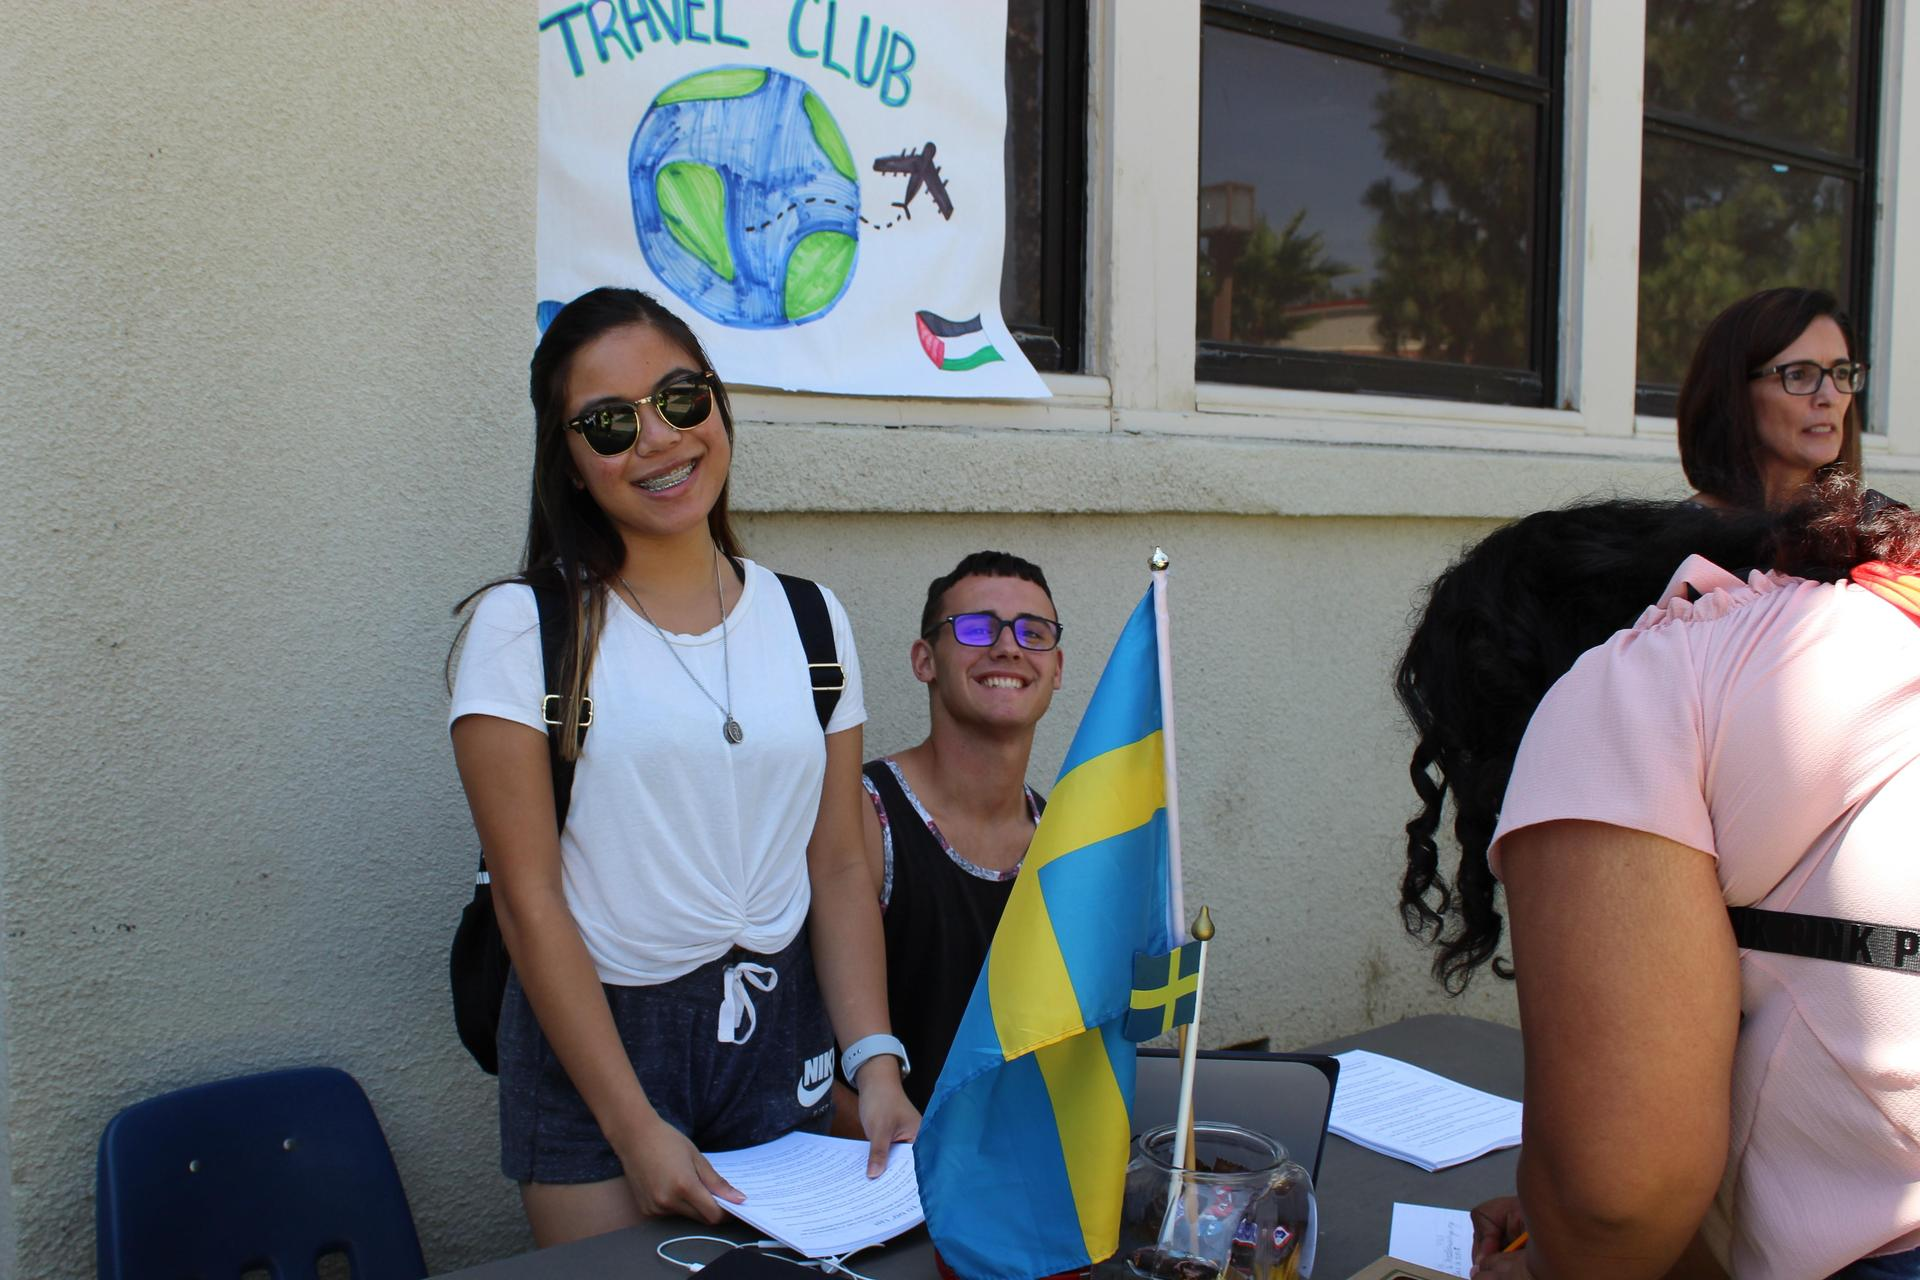 Students and staff at club rush